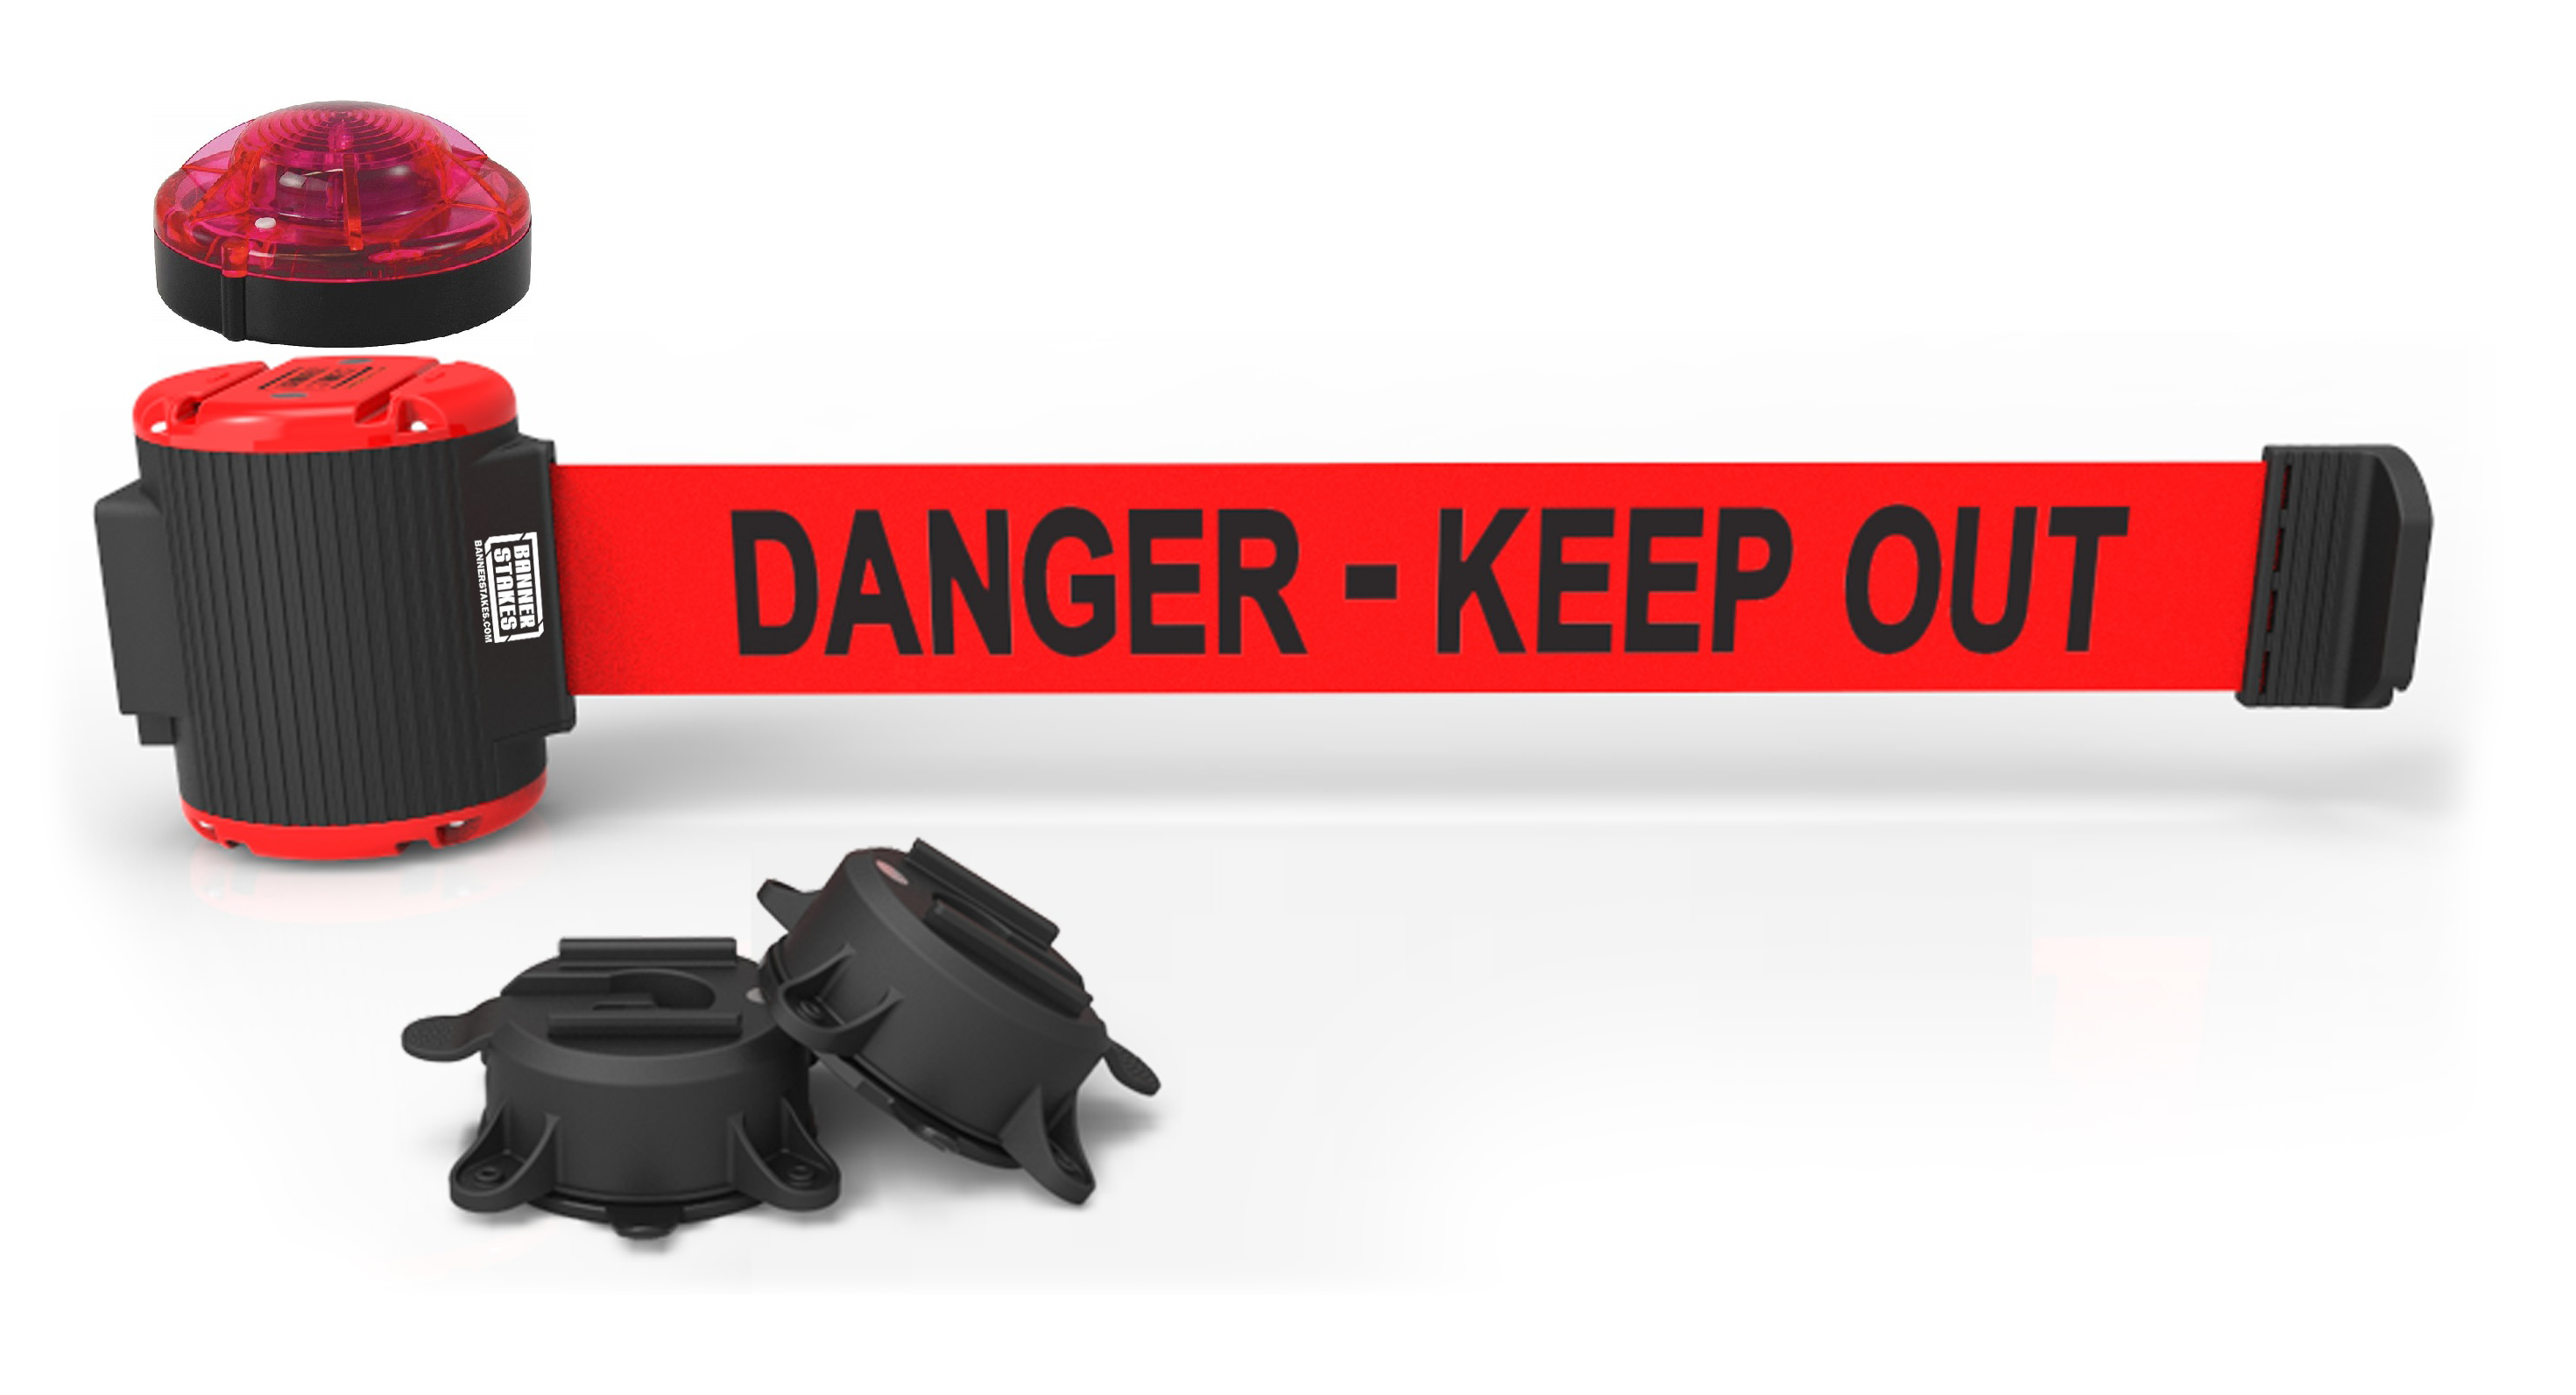 image of safety barrier and wall mounts